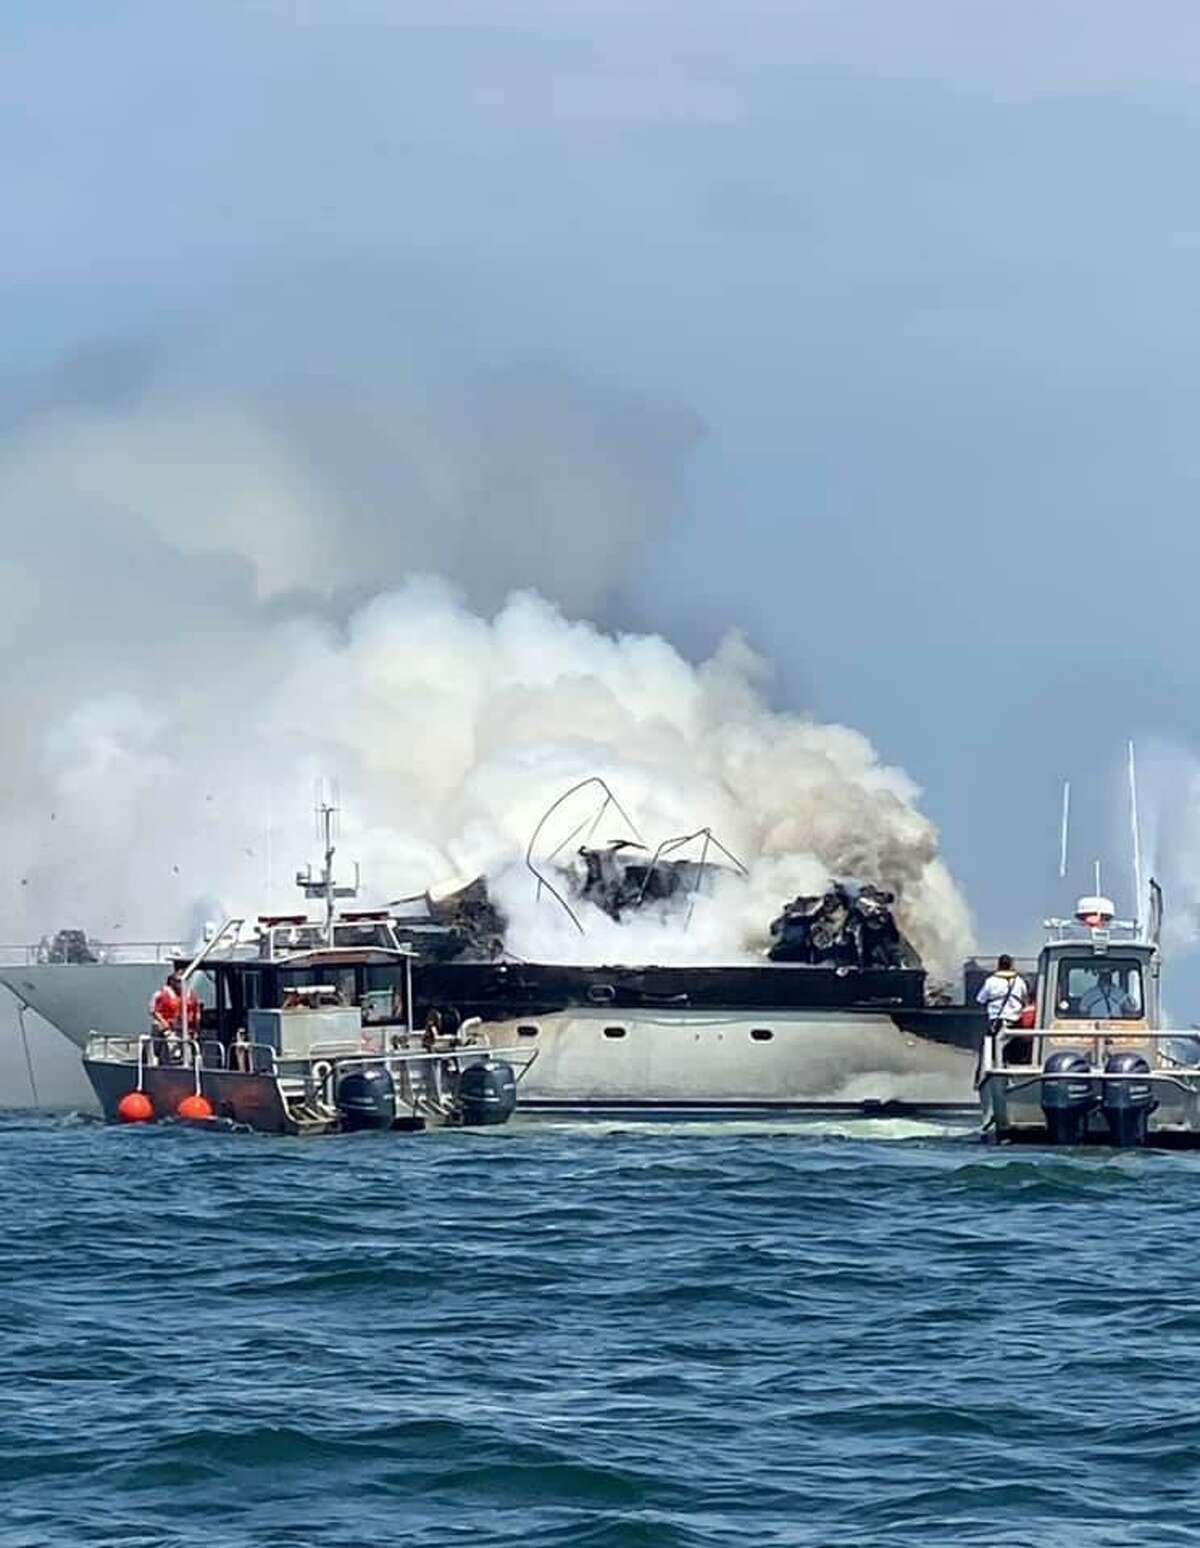 Eight passengers were rescued from this 70-foot yacht that caught fire Thursday afternoon.